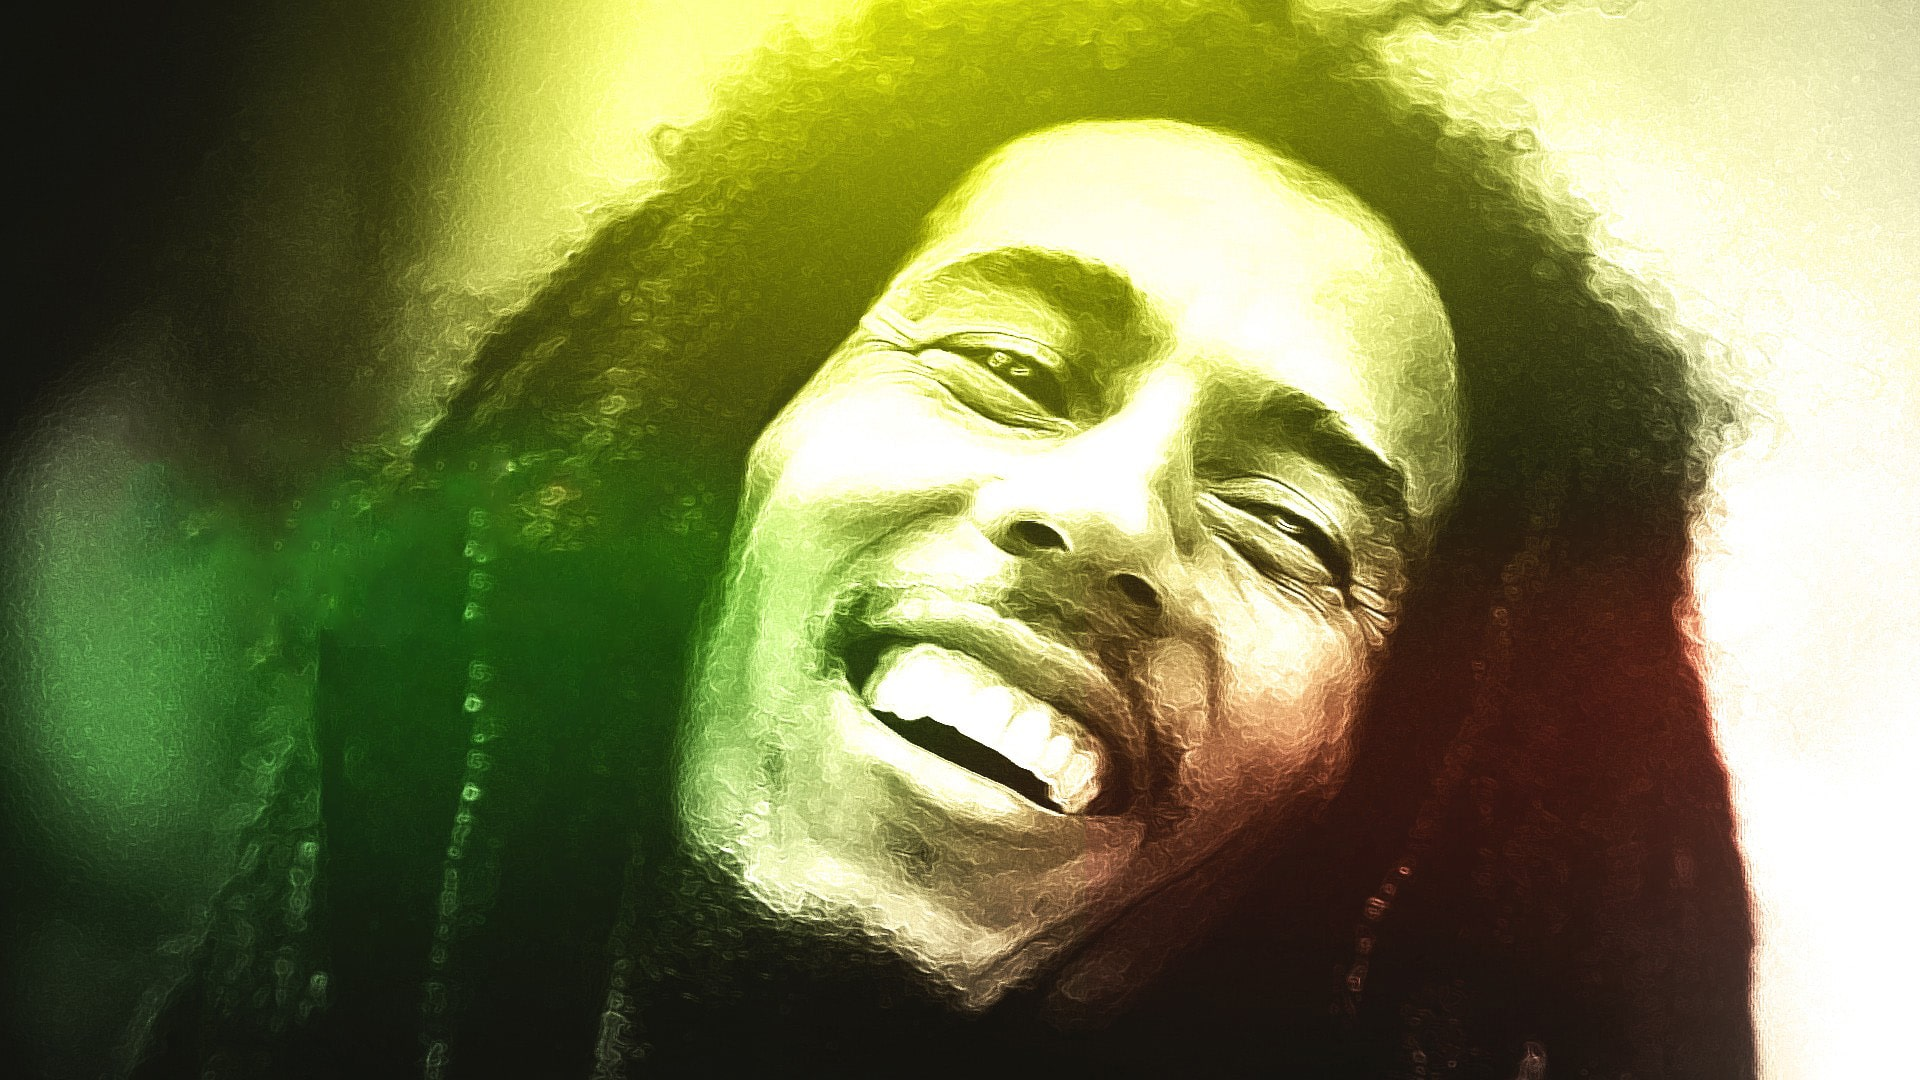 Bob Marley (Jamming - Is This Love - Could You be Loved - No Woman No Cry)